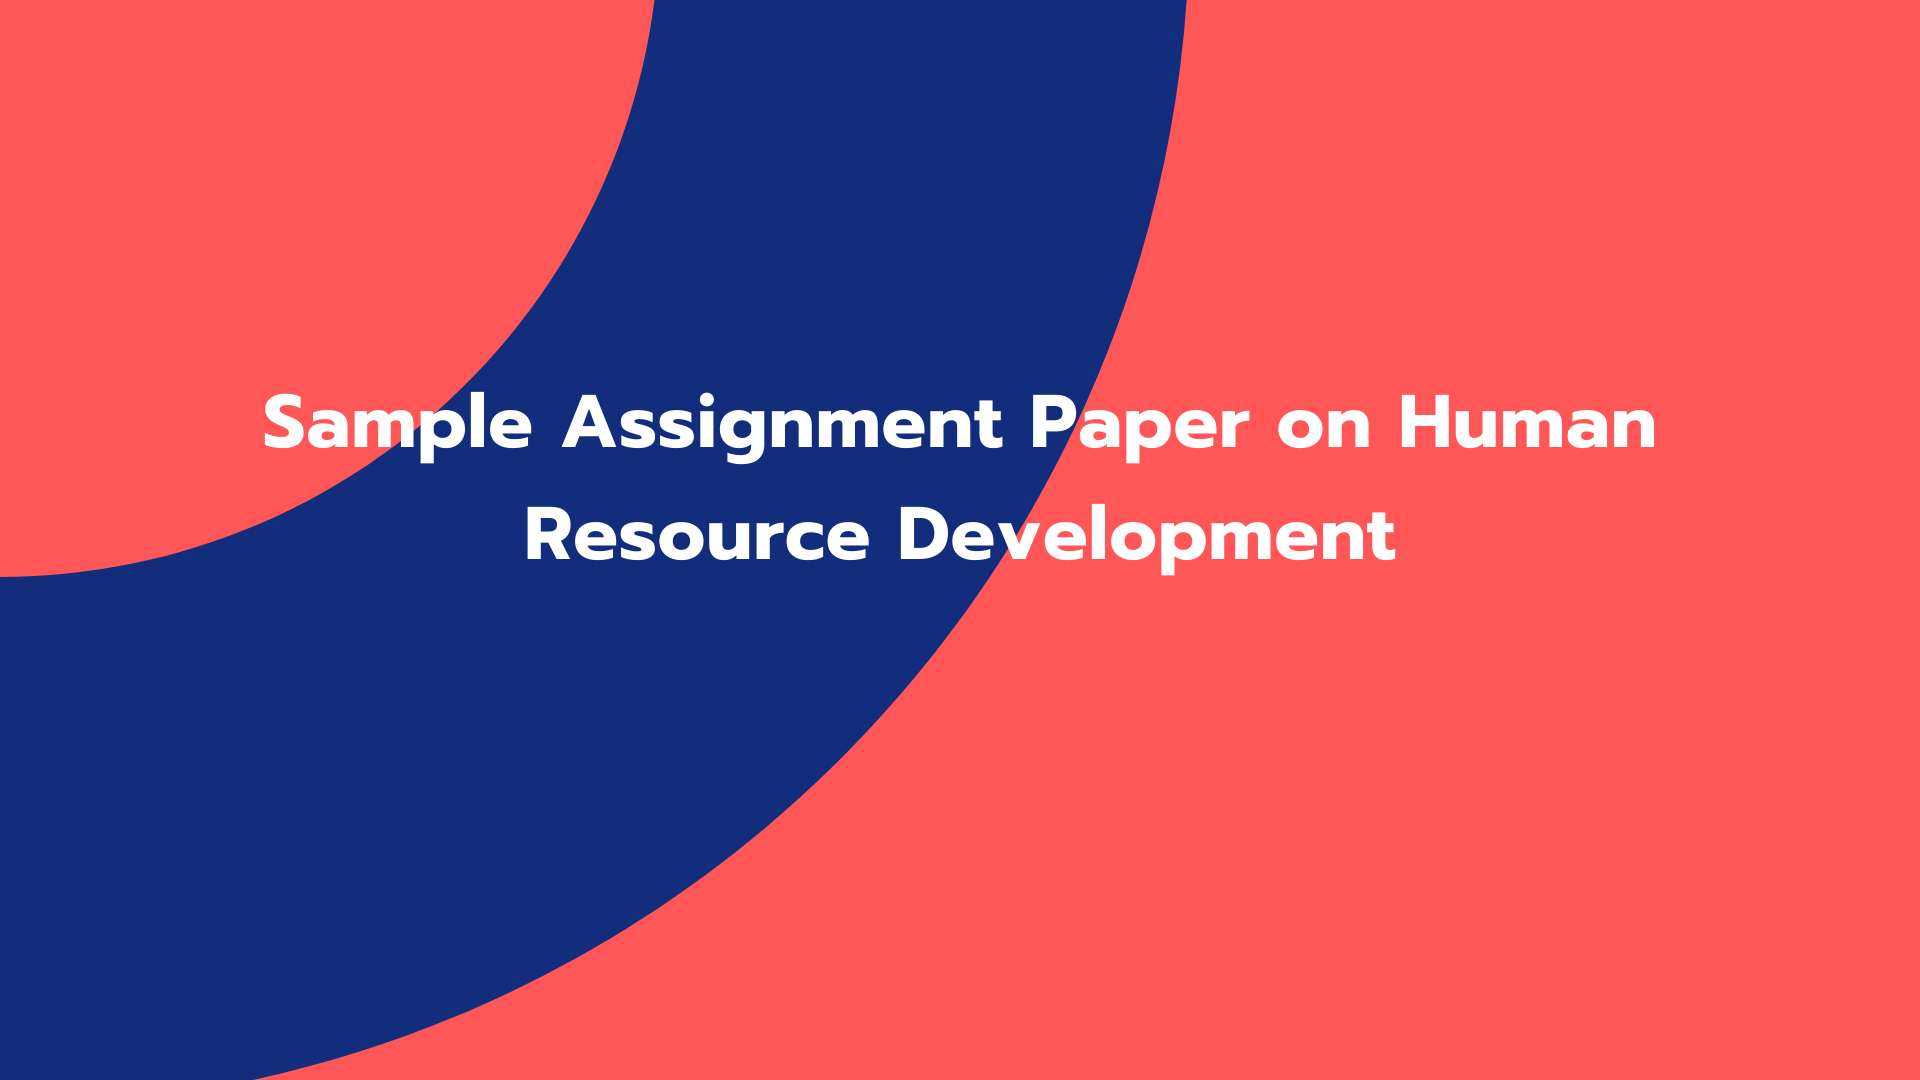 Sample Assignment Paper on Human Resource Development